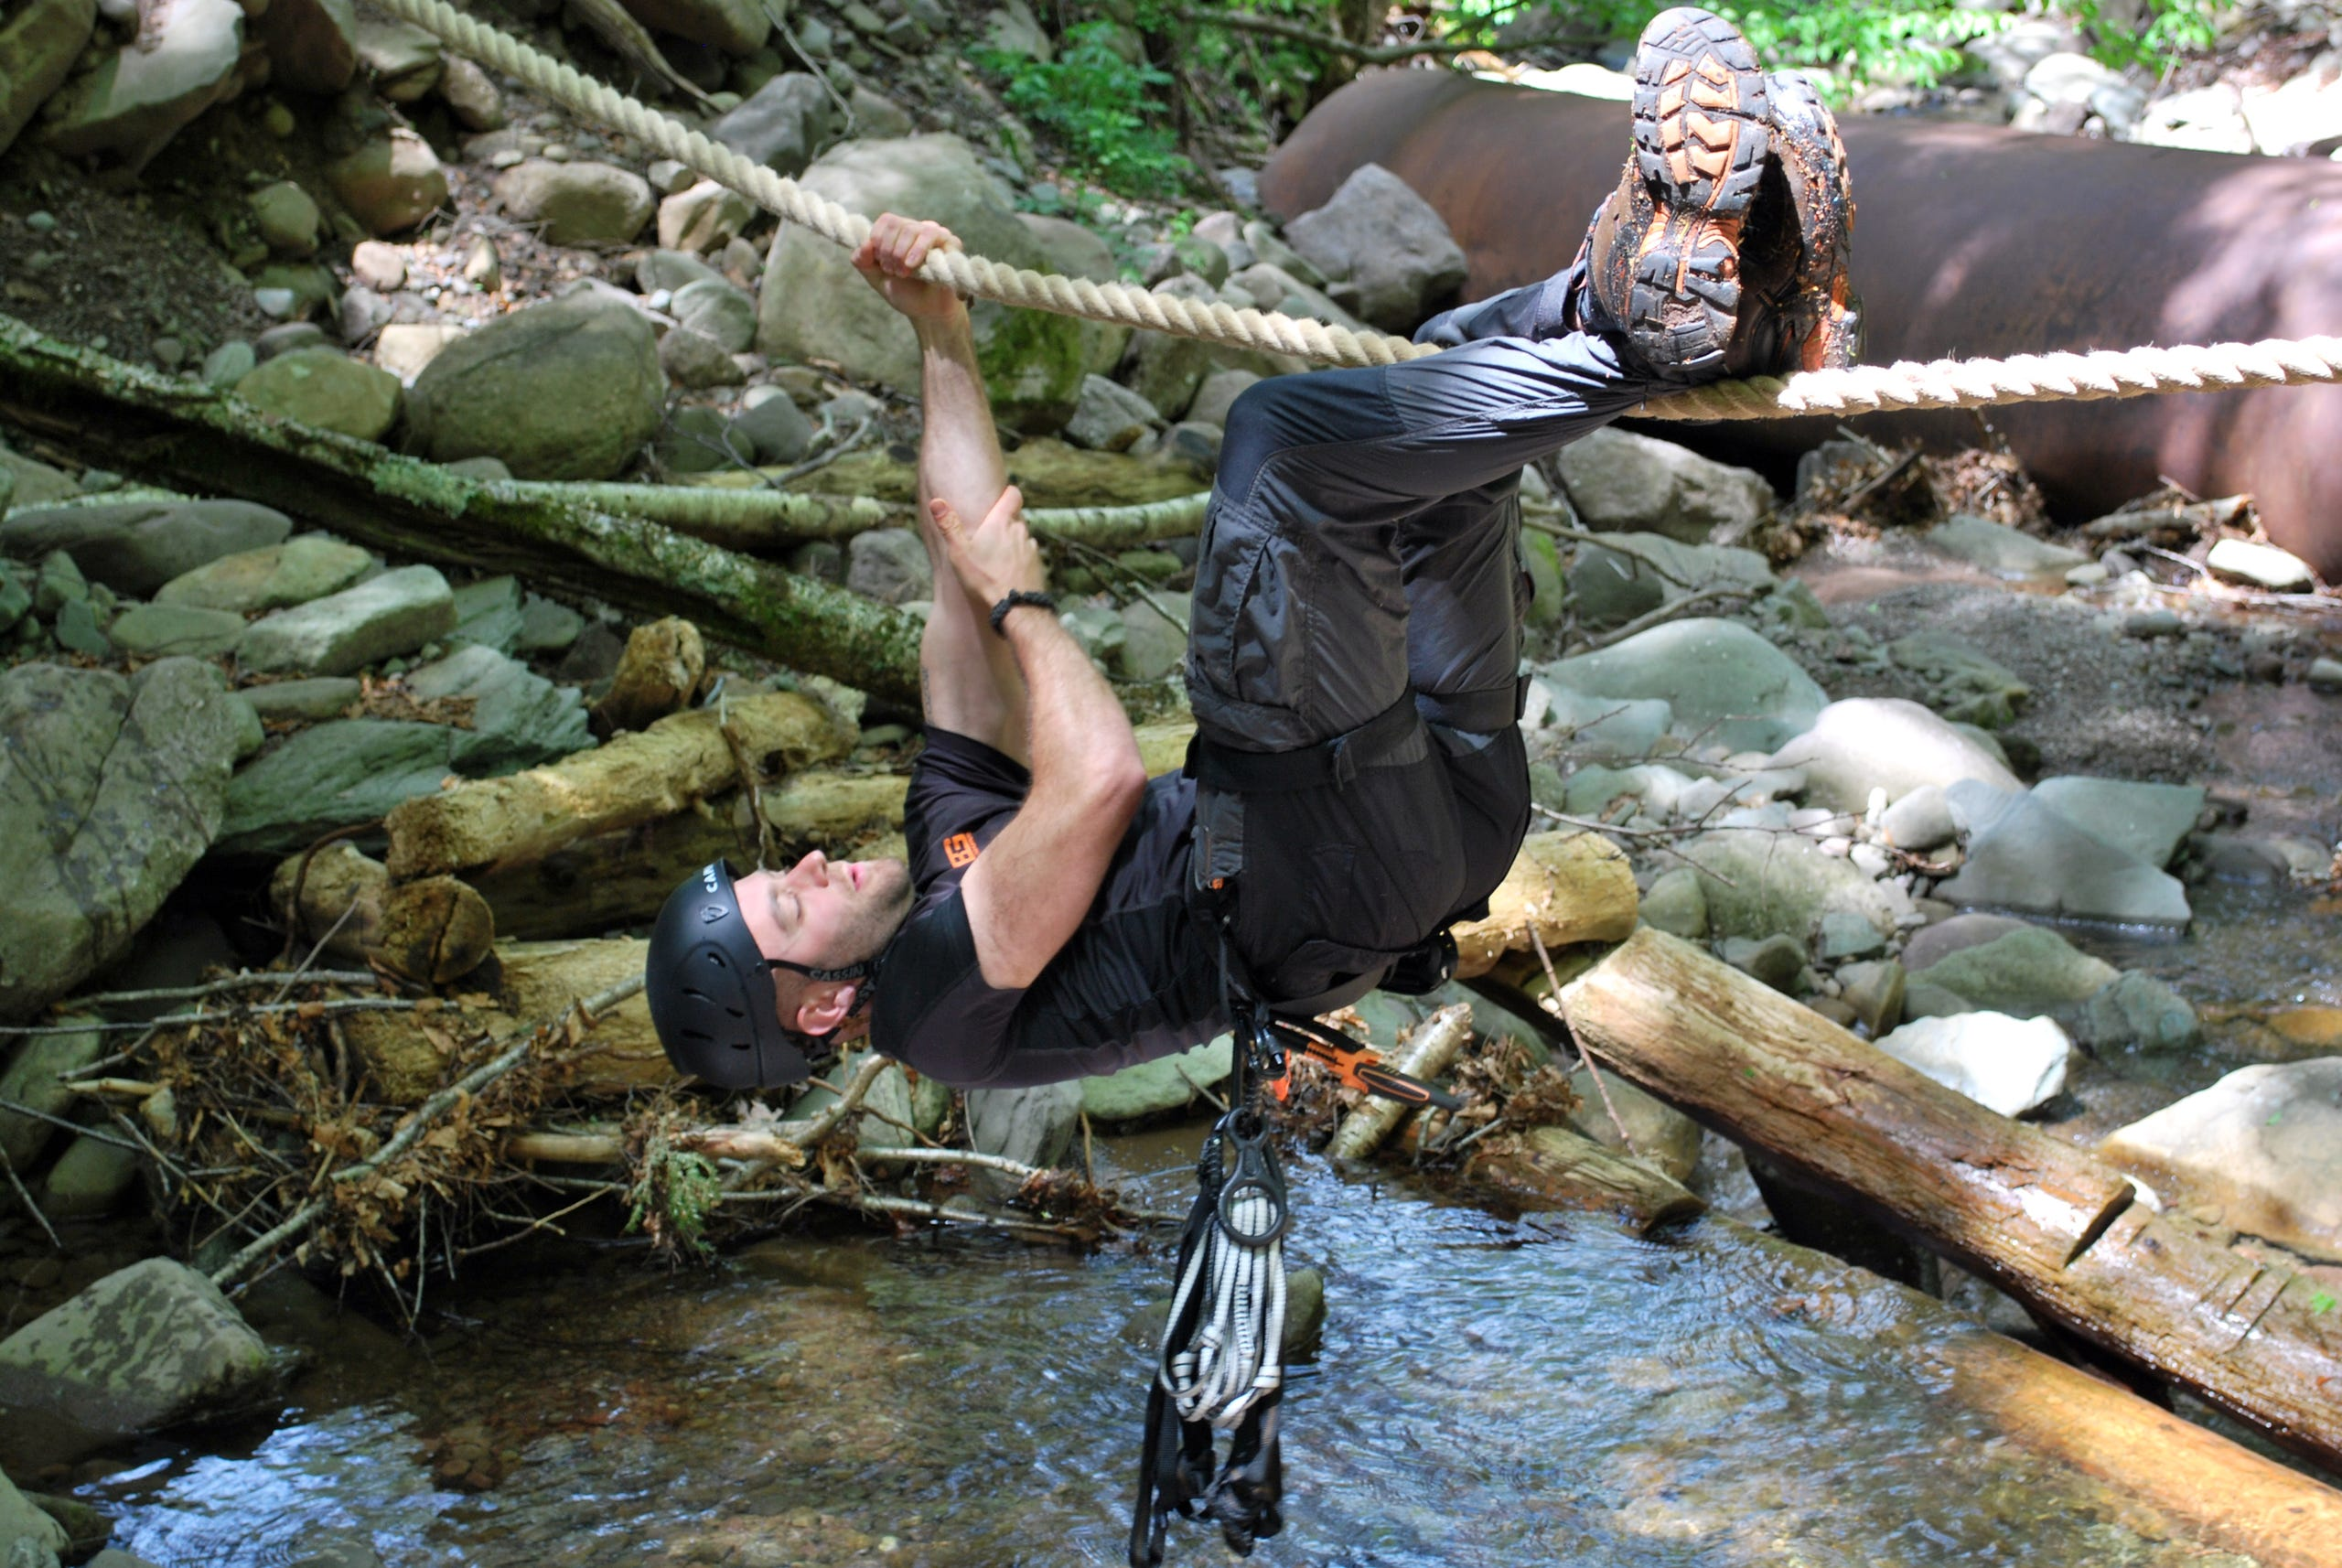 Man on rope at Bear Grylls Survival Academy